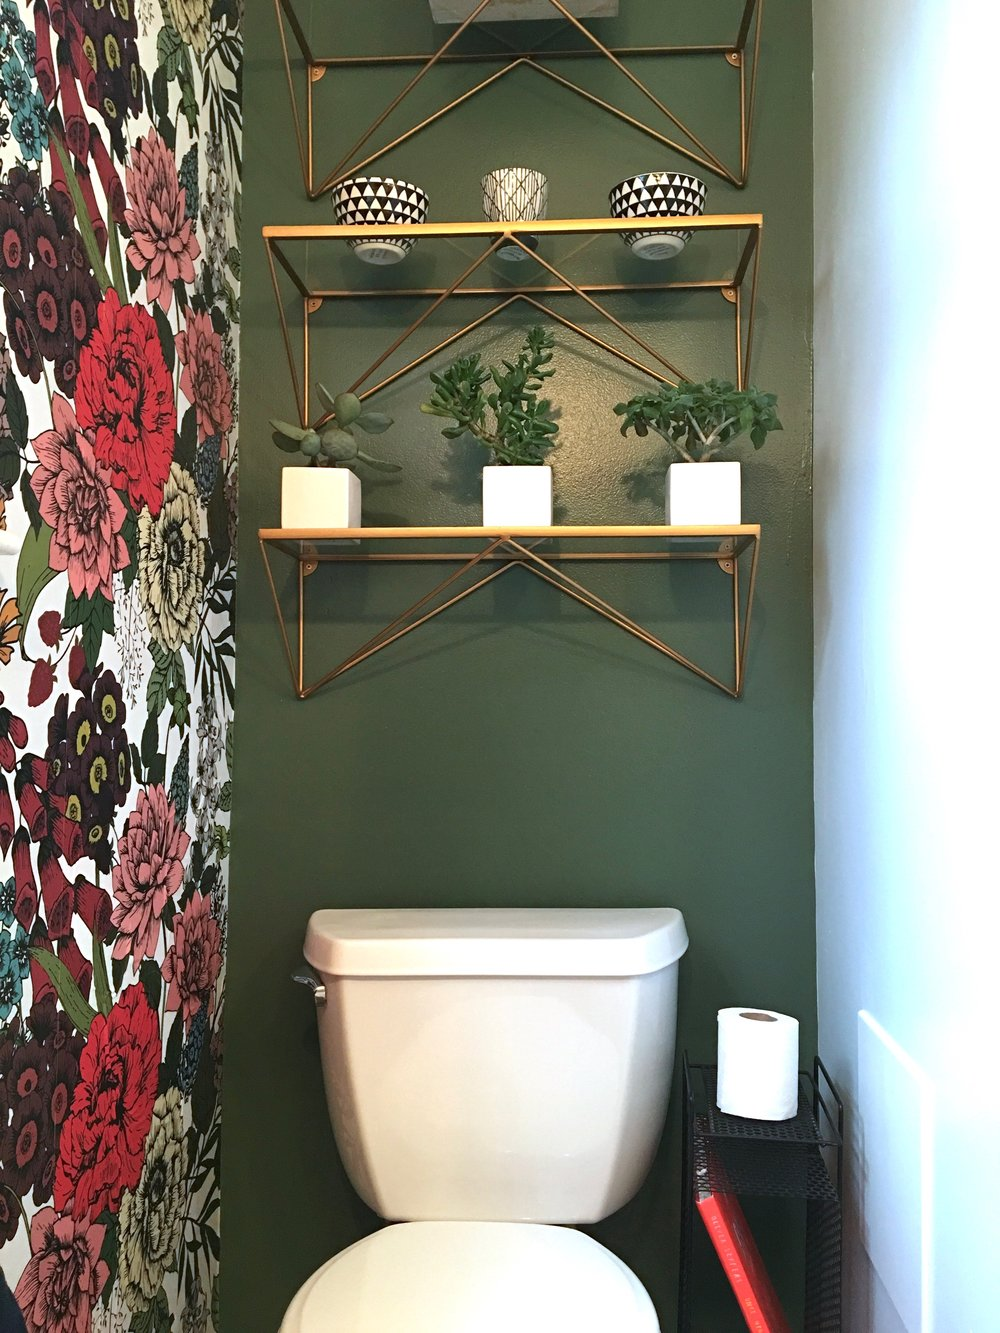 Retro Bathroom with Green Toilet wall, gold brass floating shelves and old phone stand for toilet paper